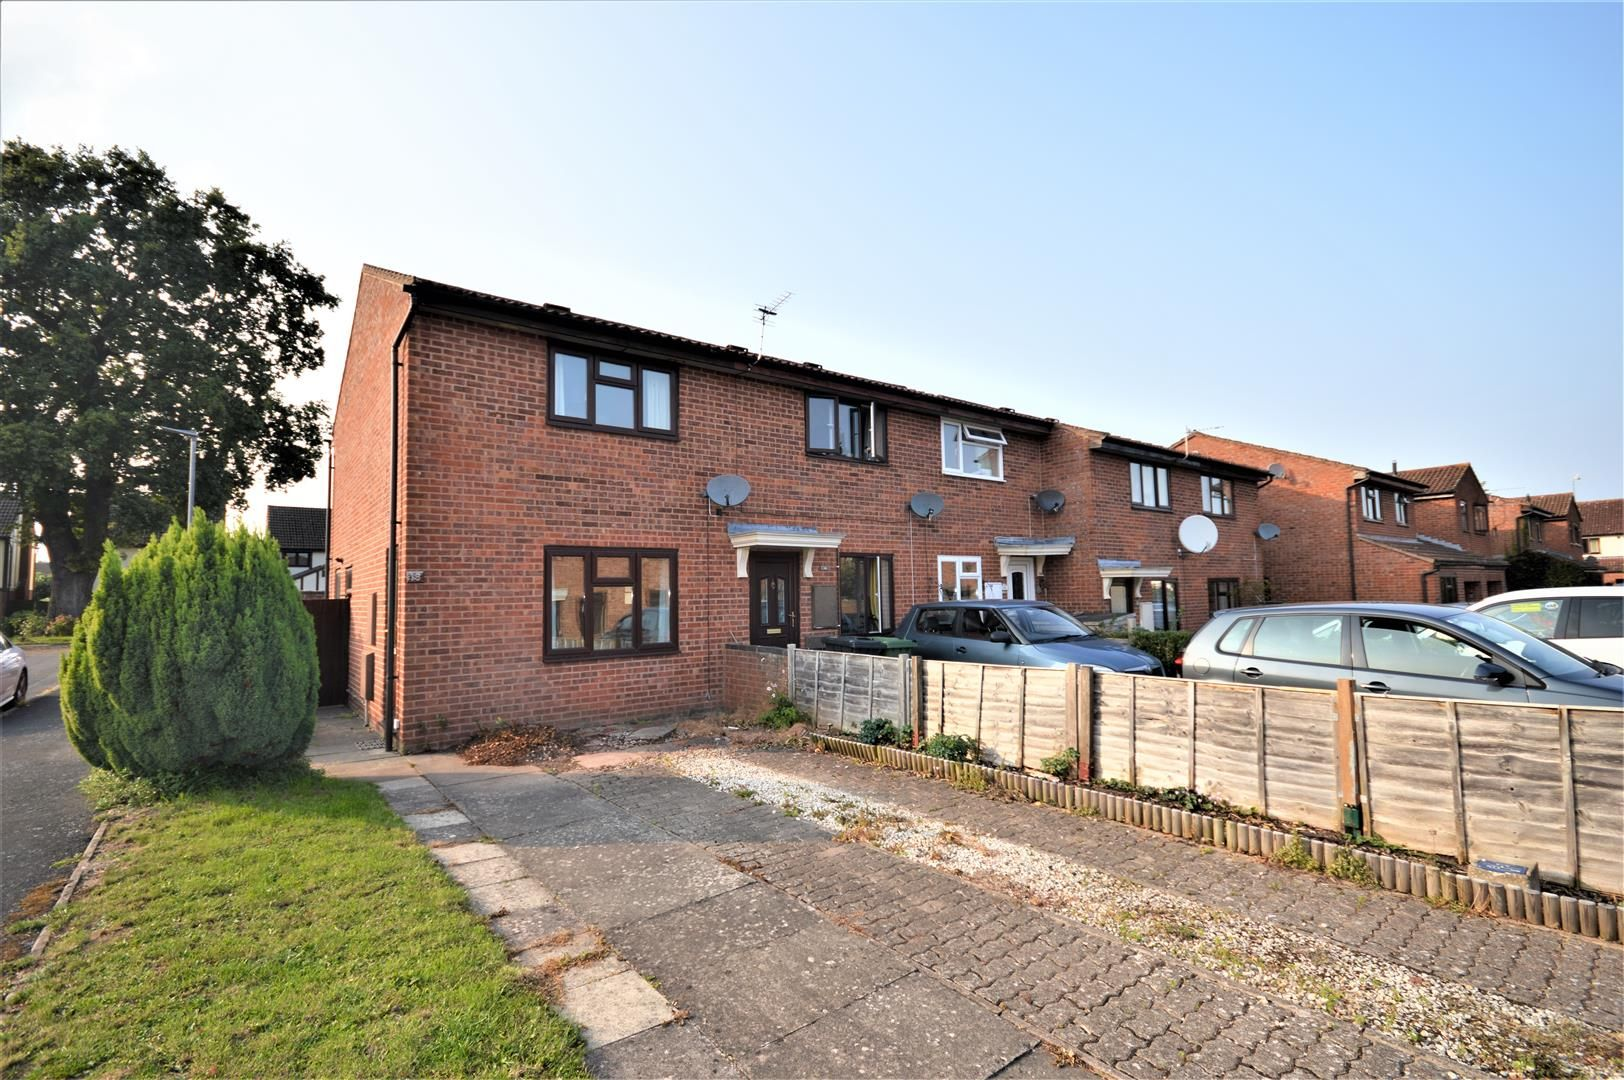 2 bed end-of-terrace for sale, HR4